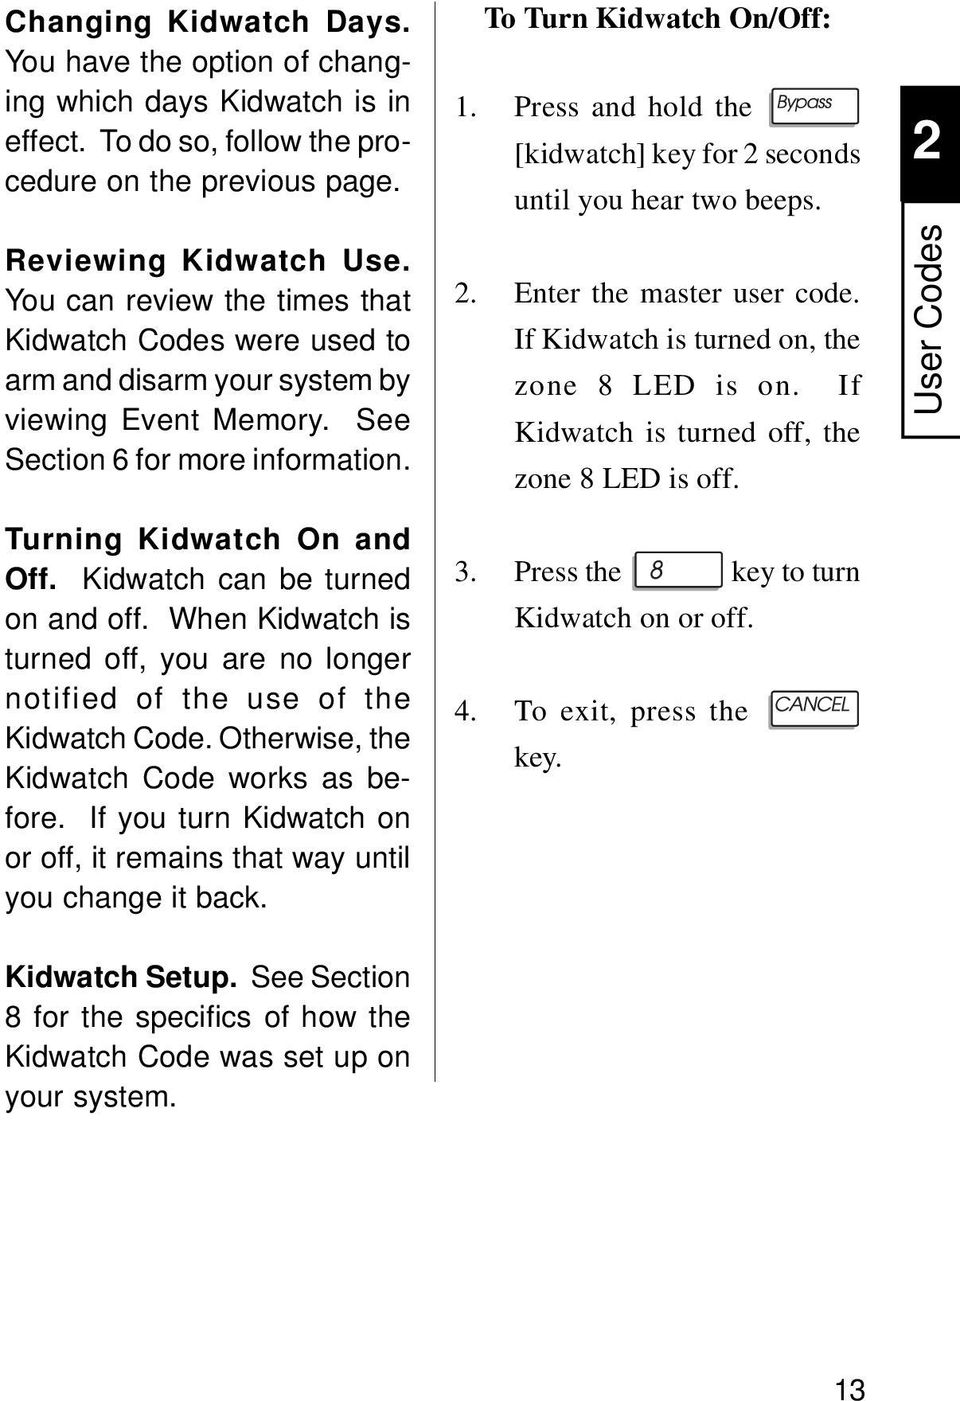 You can review the times that Kidwatch Codes were used to arm and disarm your system by viewing Event Memory. See Section 6 for more information. 2. Enter the master user code.